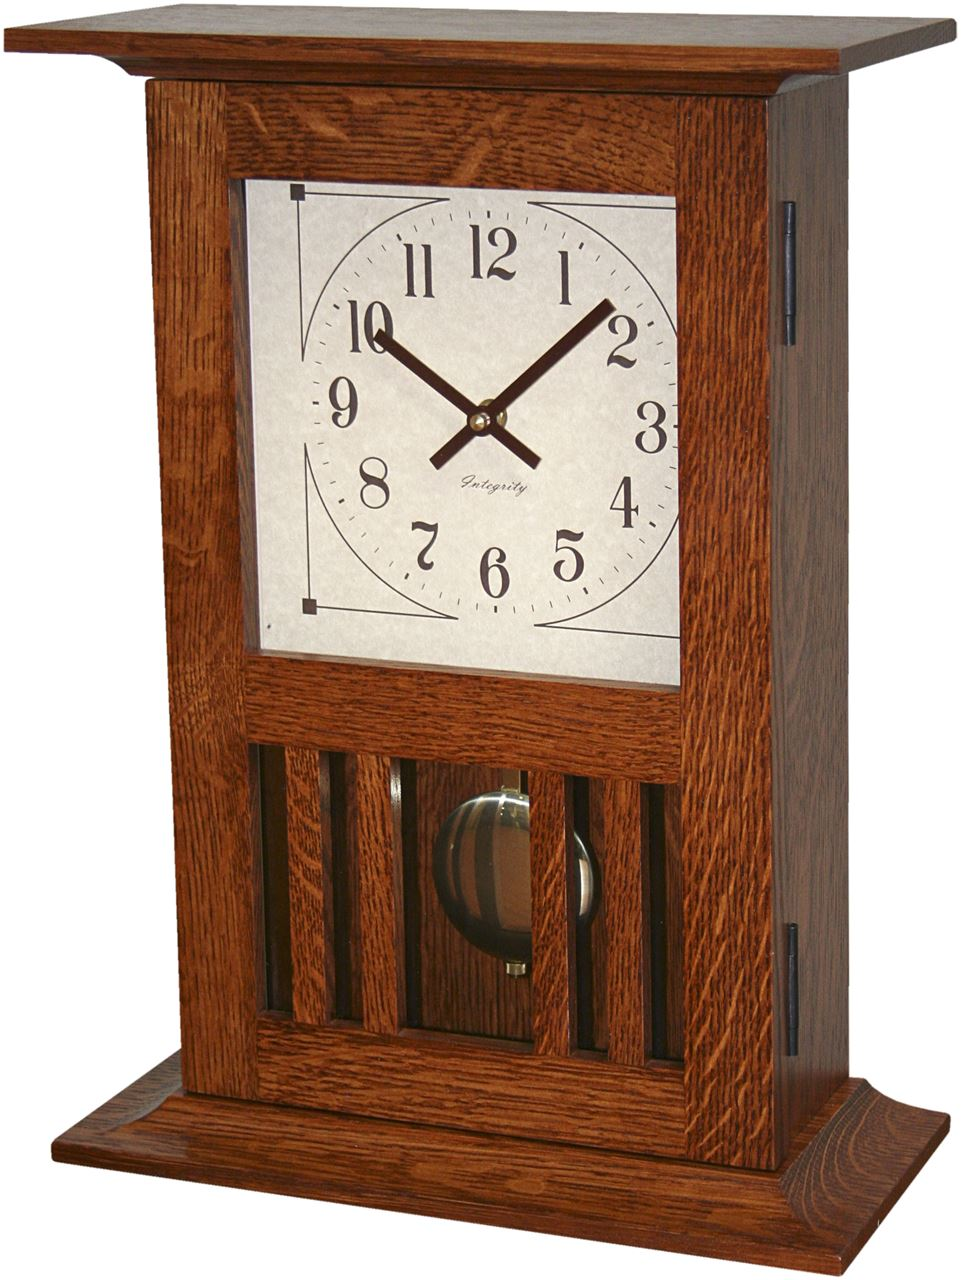 Mission Mantle Clock Without Chimes Four Seasons